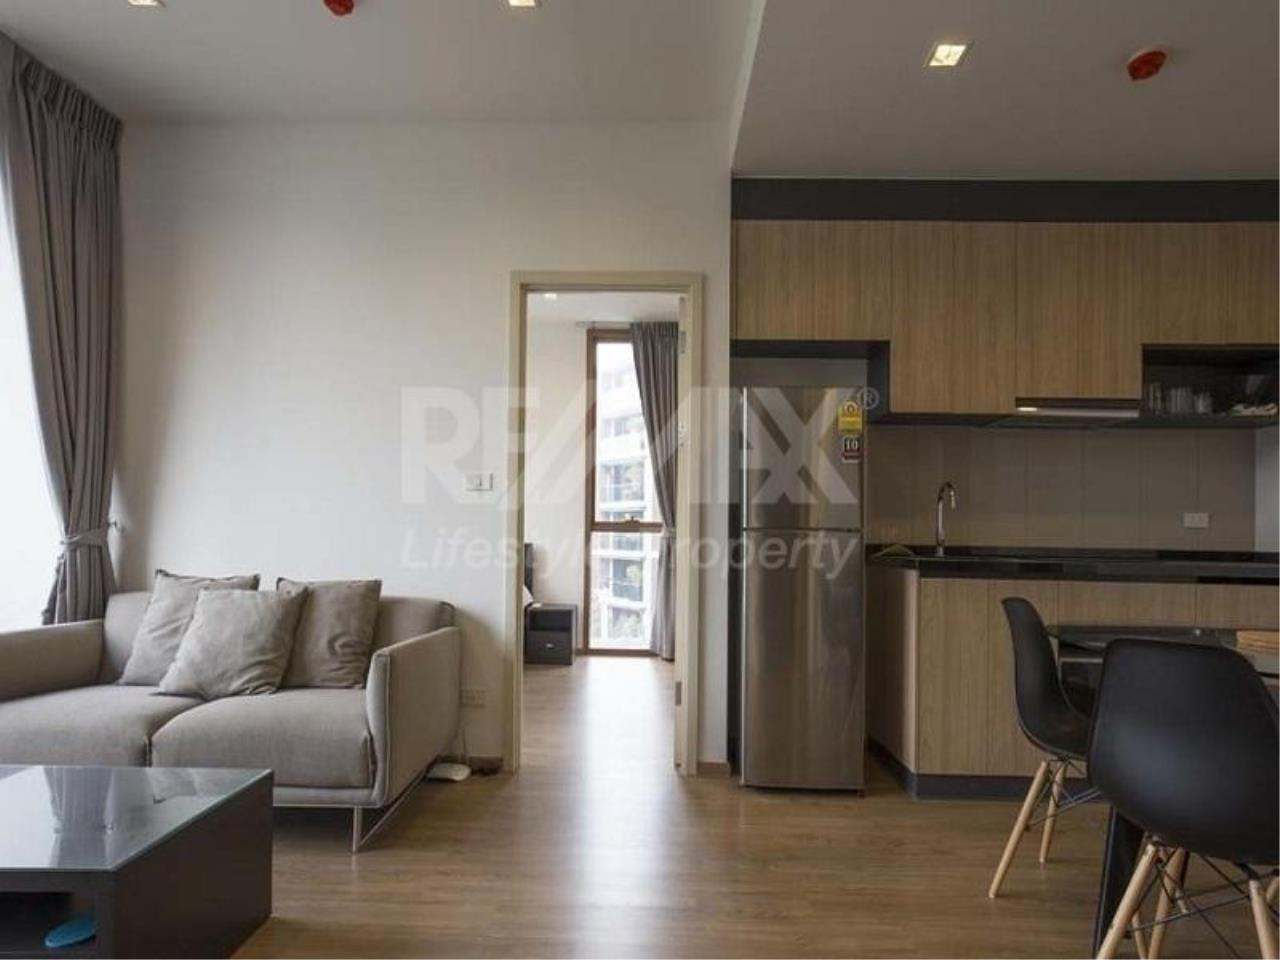 RE/MAX LifeStyle Property Agency's Hasu Haus 4